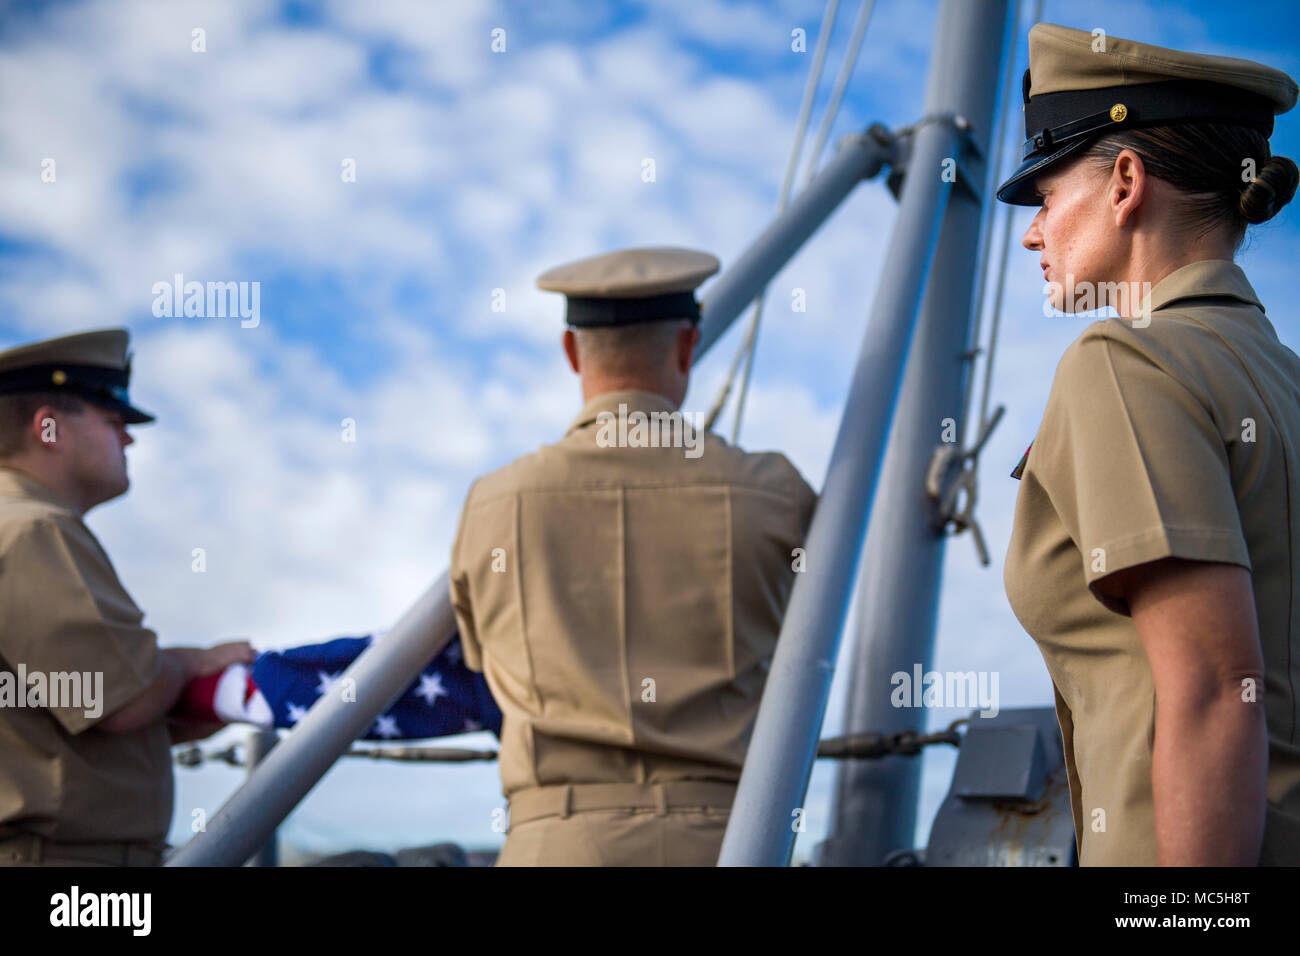 2 Chief Petty Officer Mess Stockfotos & 2 Chief Petty Officer Mess ...